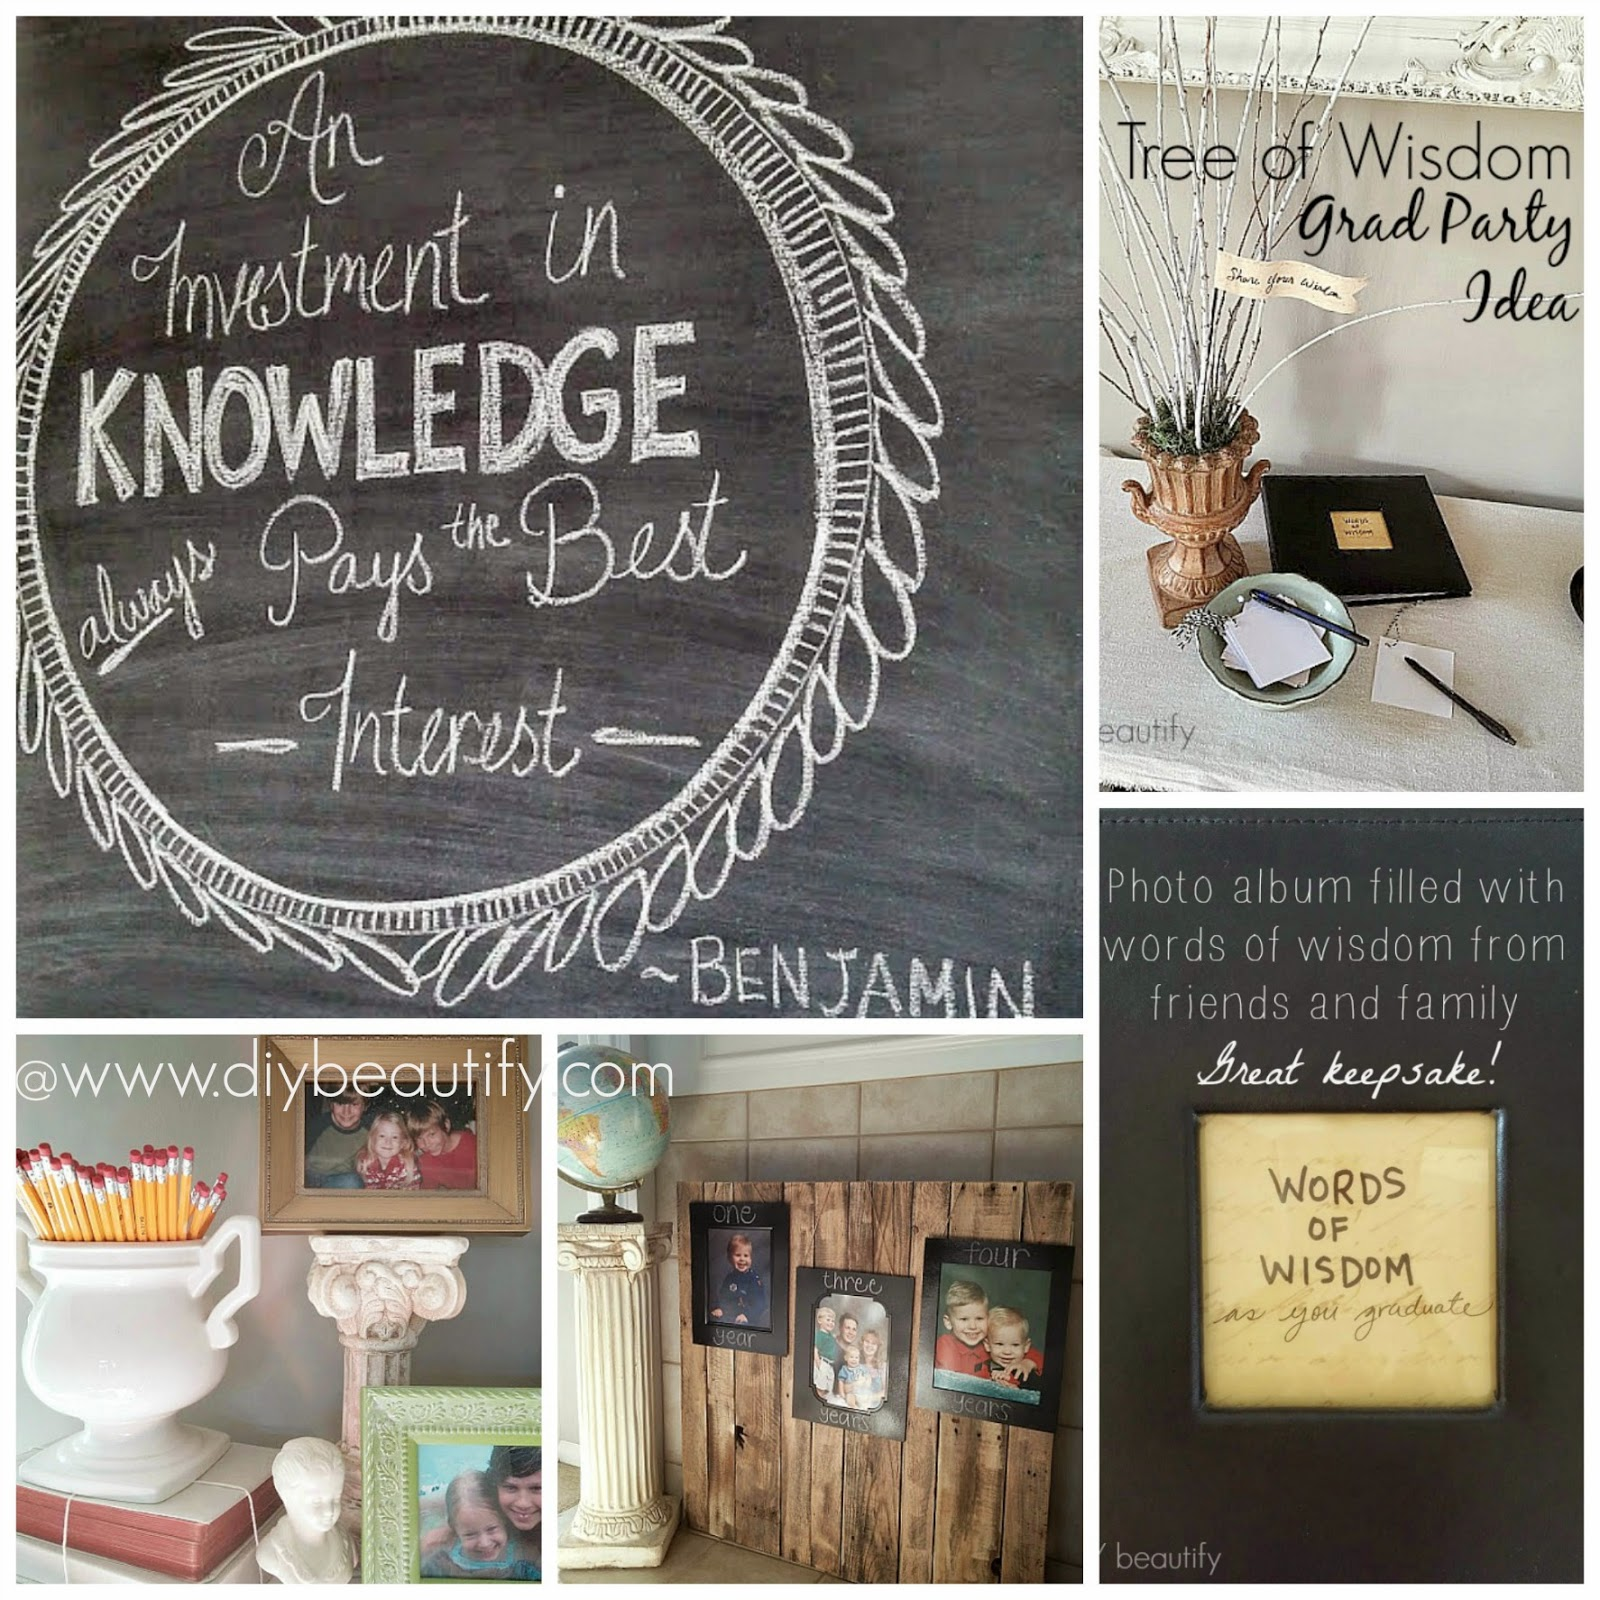 Chalkboard Quote Ben Franklin, Tree of Wisdom with words of wisdom from friends & family compiled in photo book, pillars of education mantle